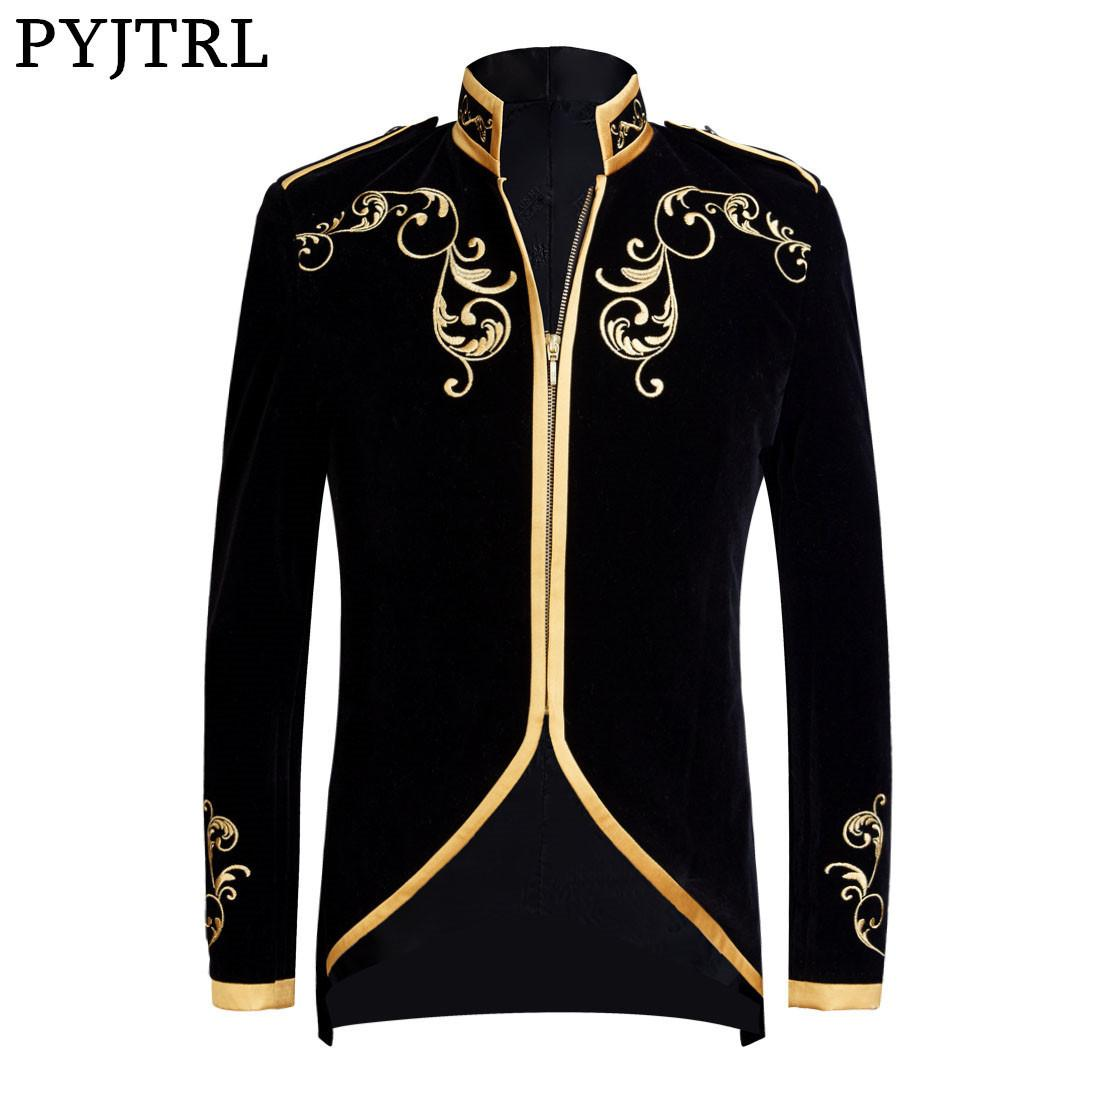 210b72864a34a 2019 PYJTRL British Style Palace Prince Fashion Black Velvet Gold Embroidery  Blazer Wedding Groom Slim Fit Suit Jacket Singers Coat S18101903 From  Junlong02 ...